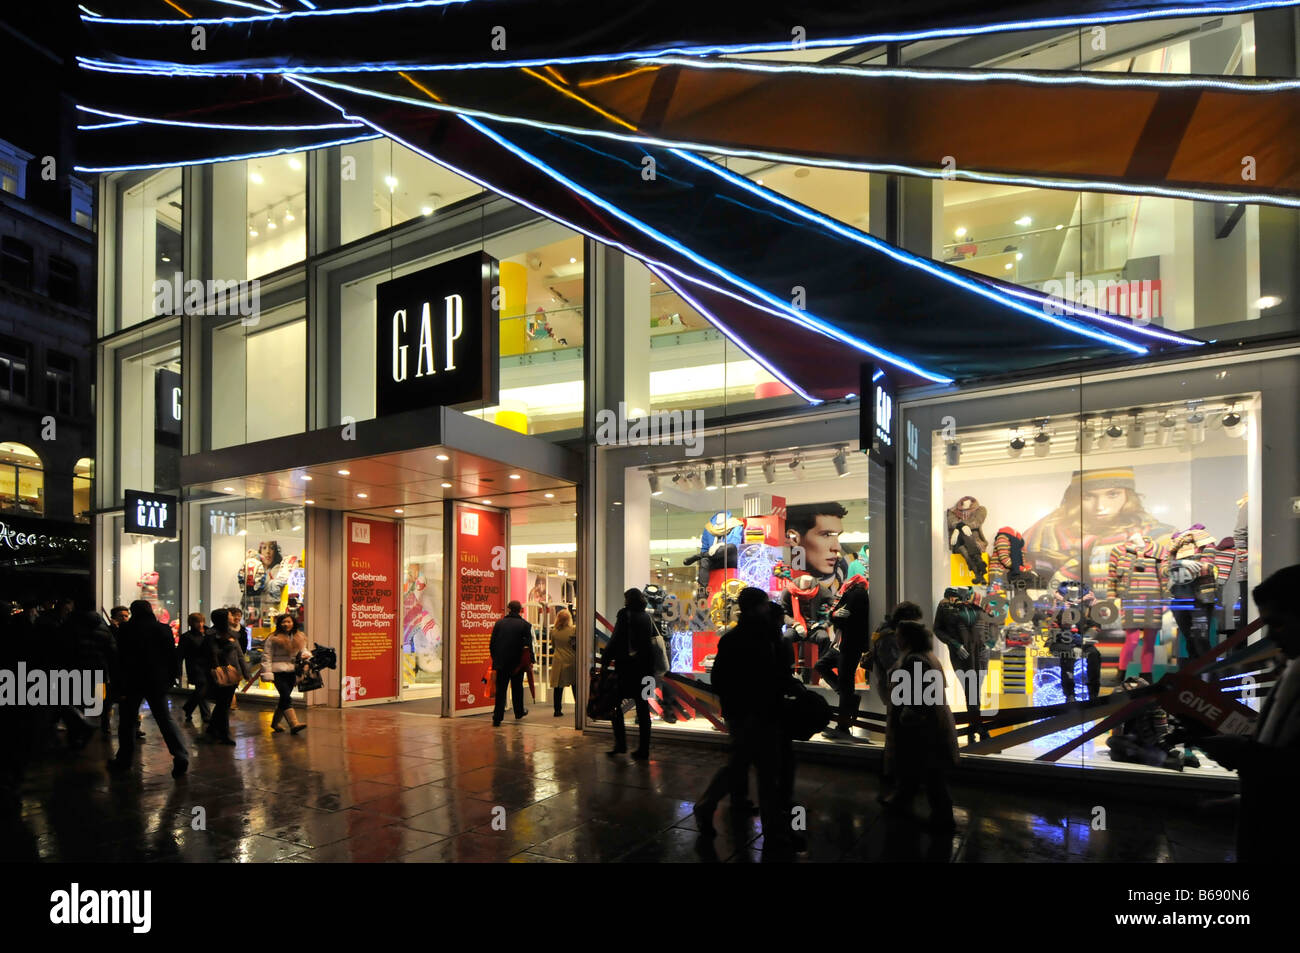 Shoppers outside the Gap fashions store Oxford Street London nighttime at Christmas in the rain - Stock Image